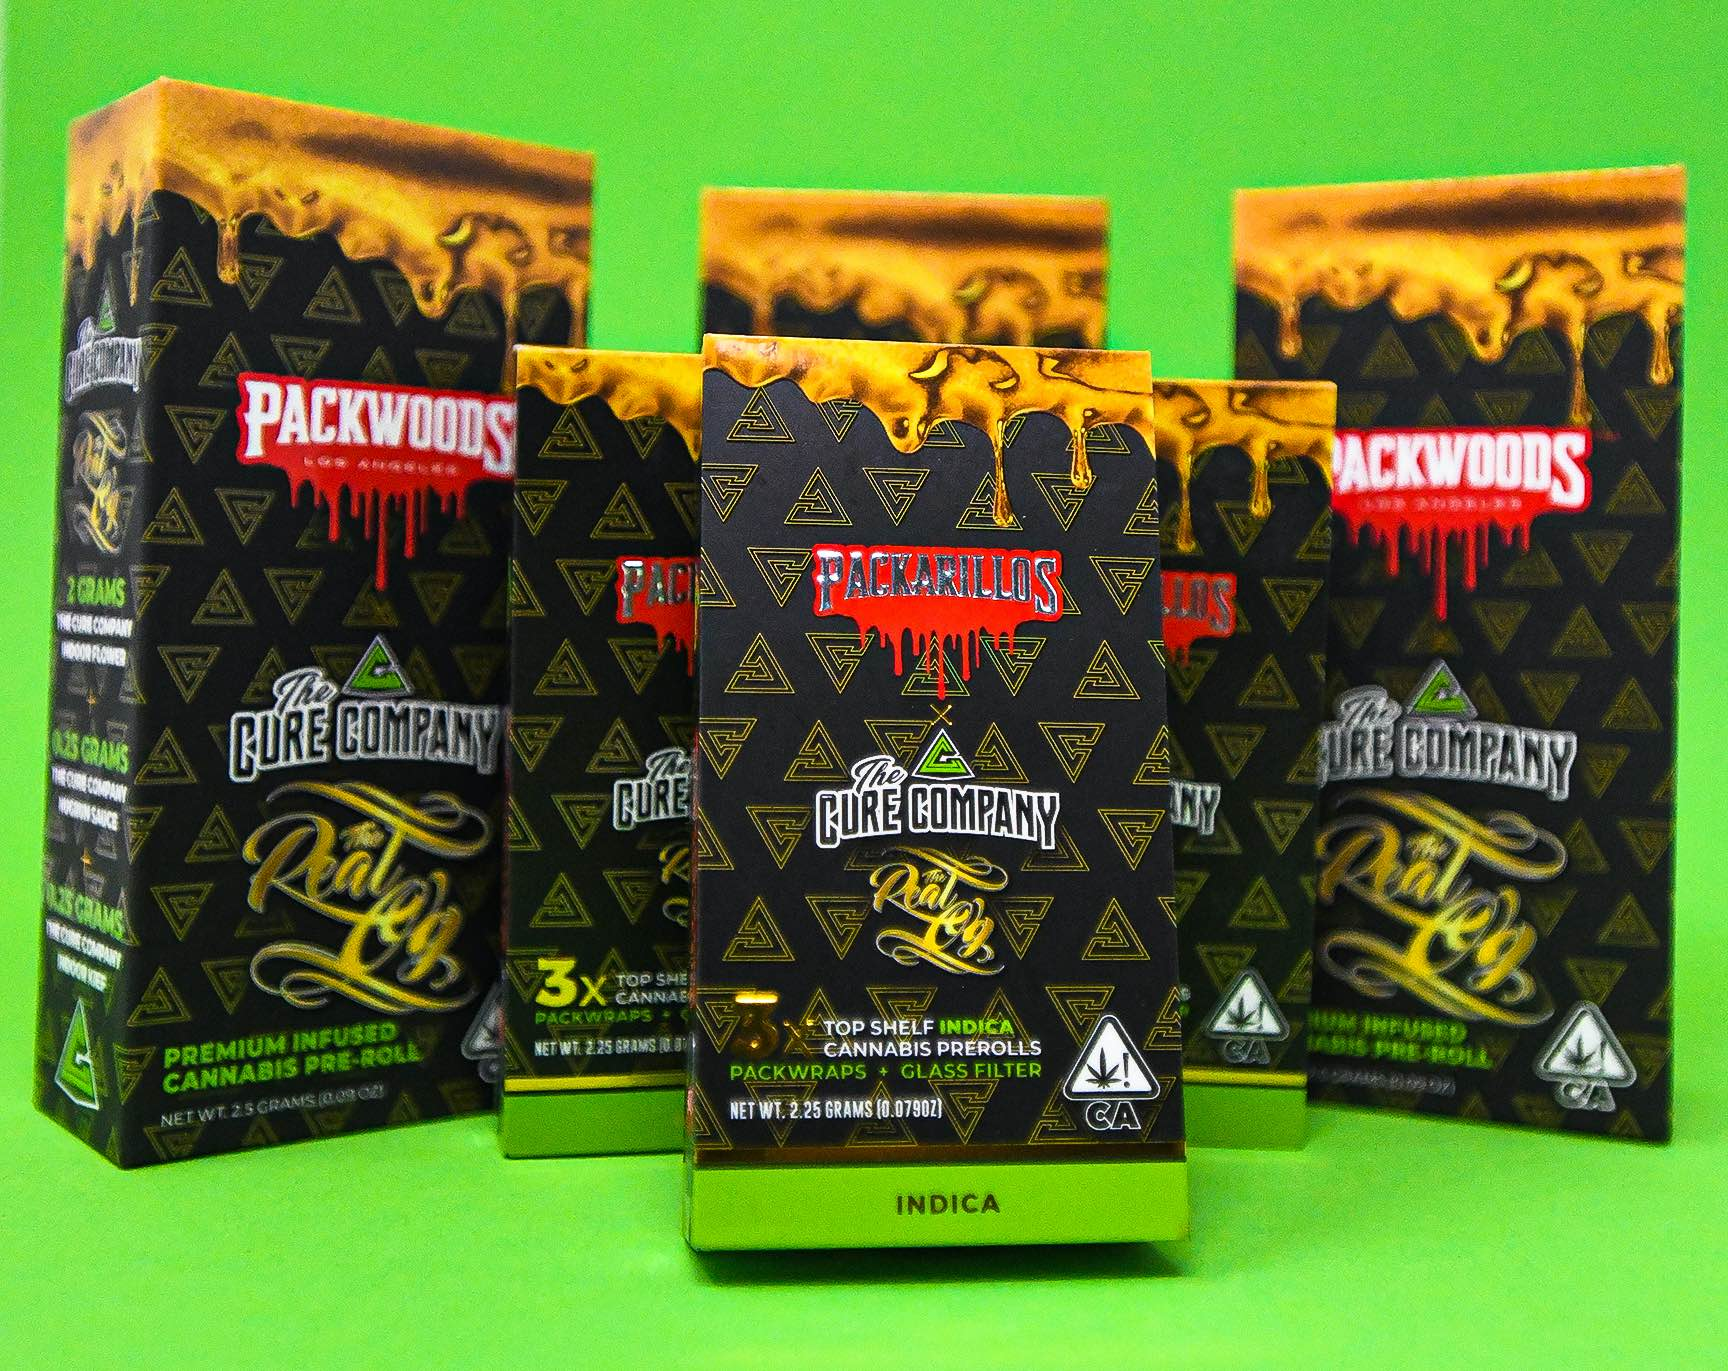 The Cure Company x Packwoods: Real OG Strain Drop